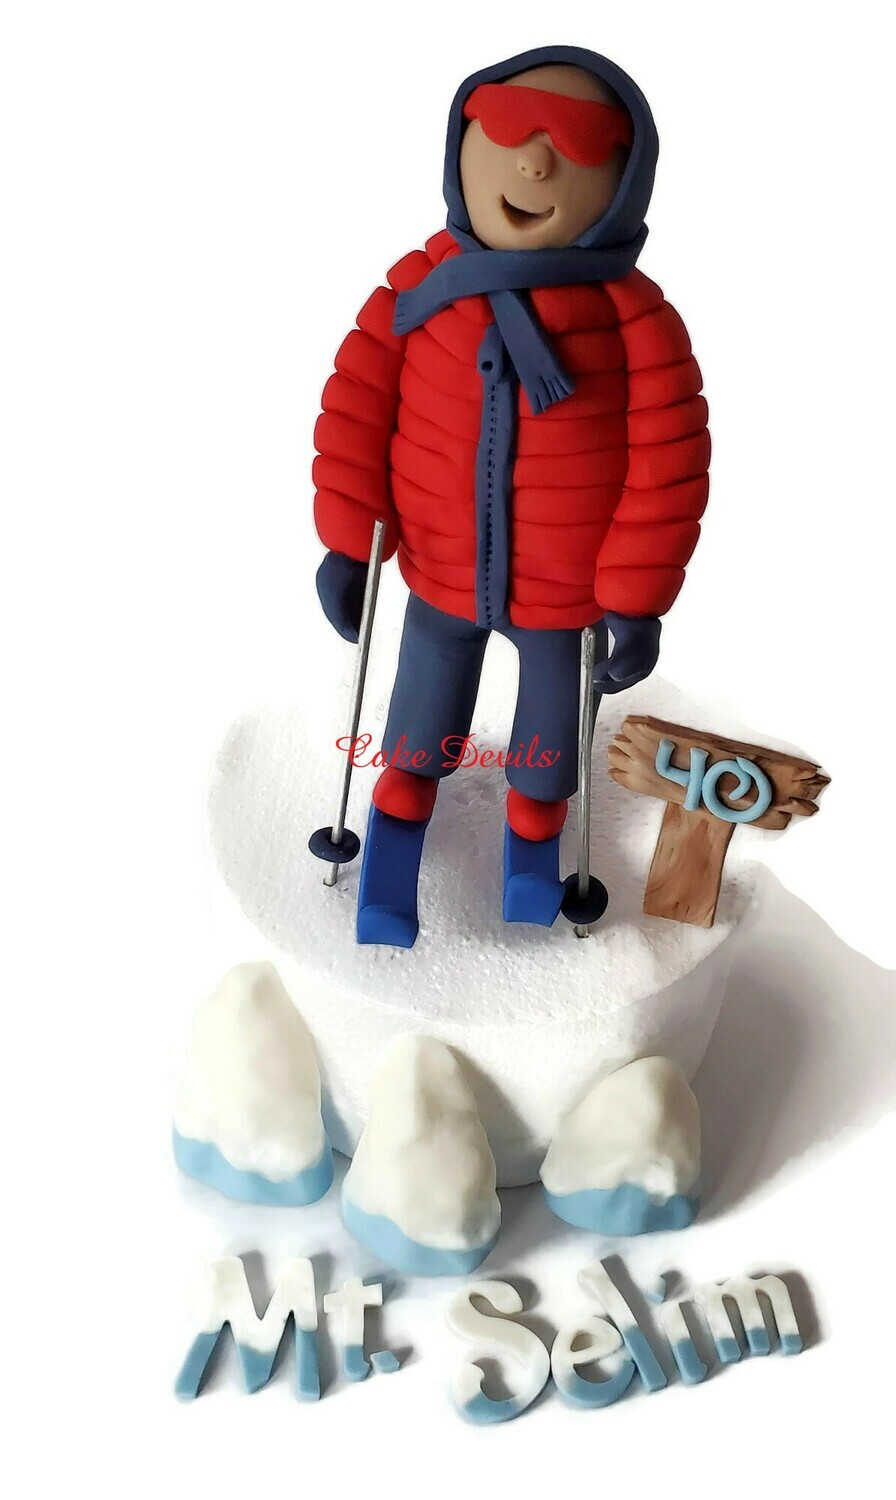 Fondant Skier Cake Toppers, perfect for a Ski Mountain Cake!